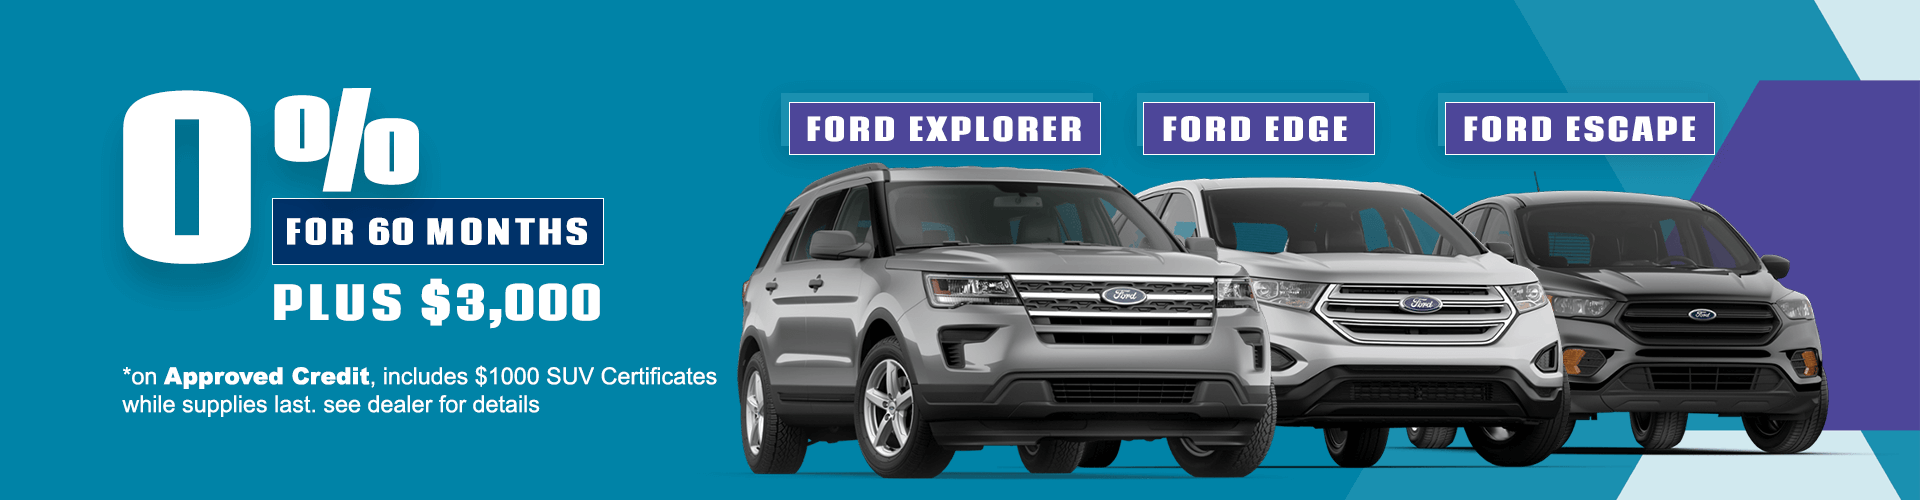 0% for 60 Months on Ford Explorer, Ford Edge and Ford Escape